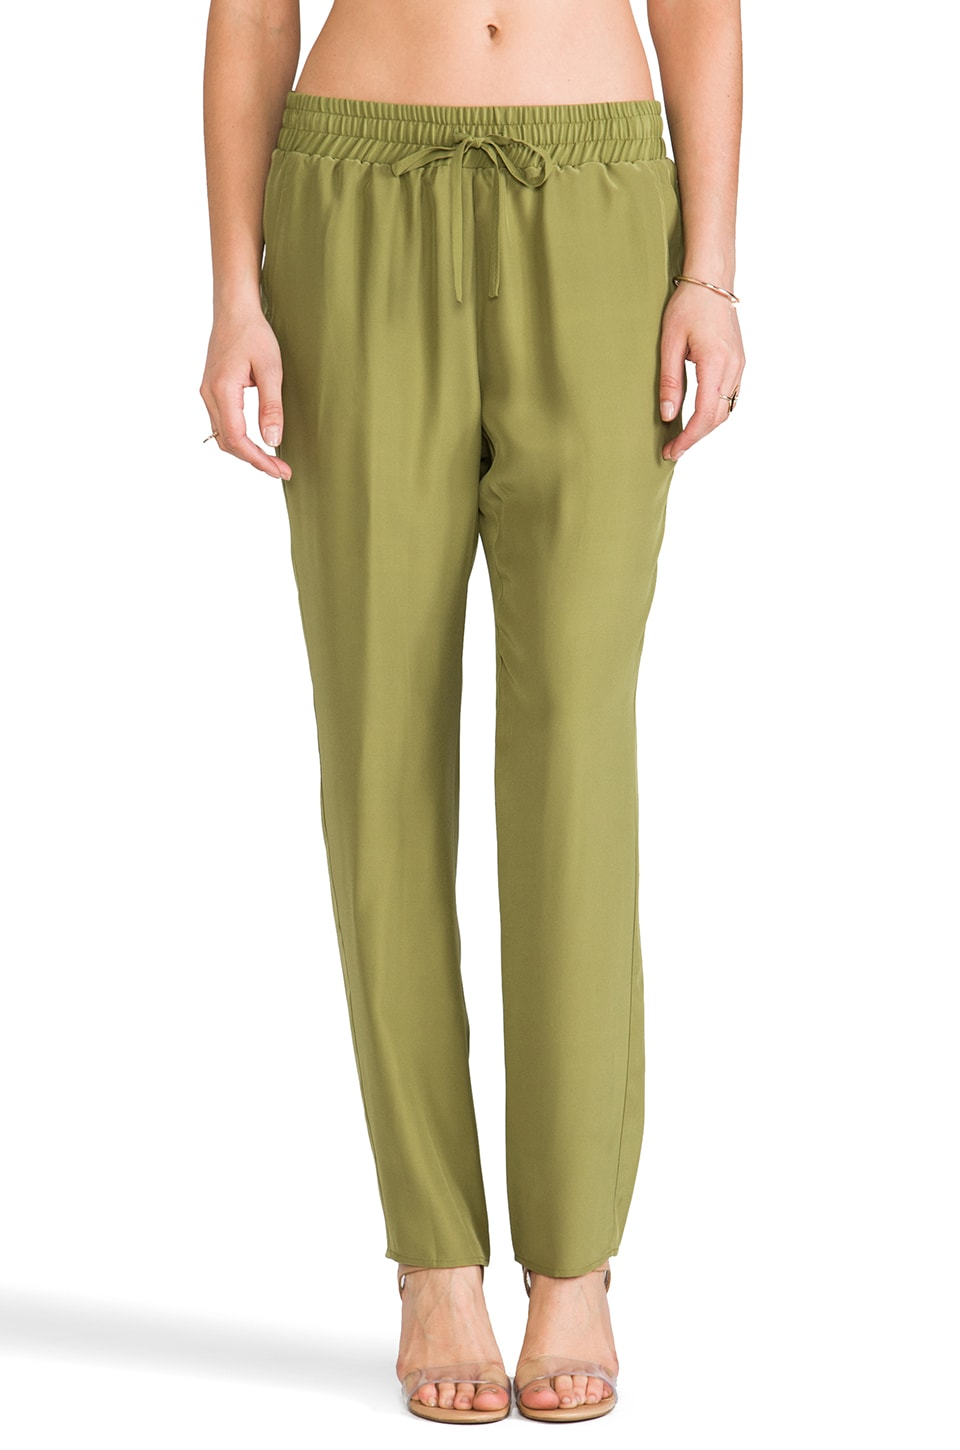 Amanda Uprichard Tribeca Pant in Olive